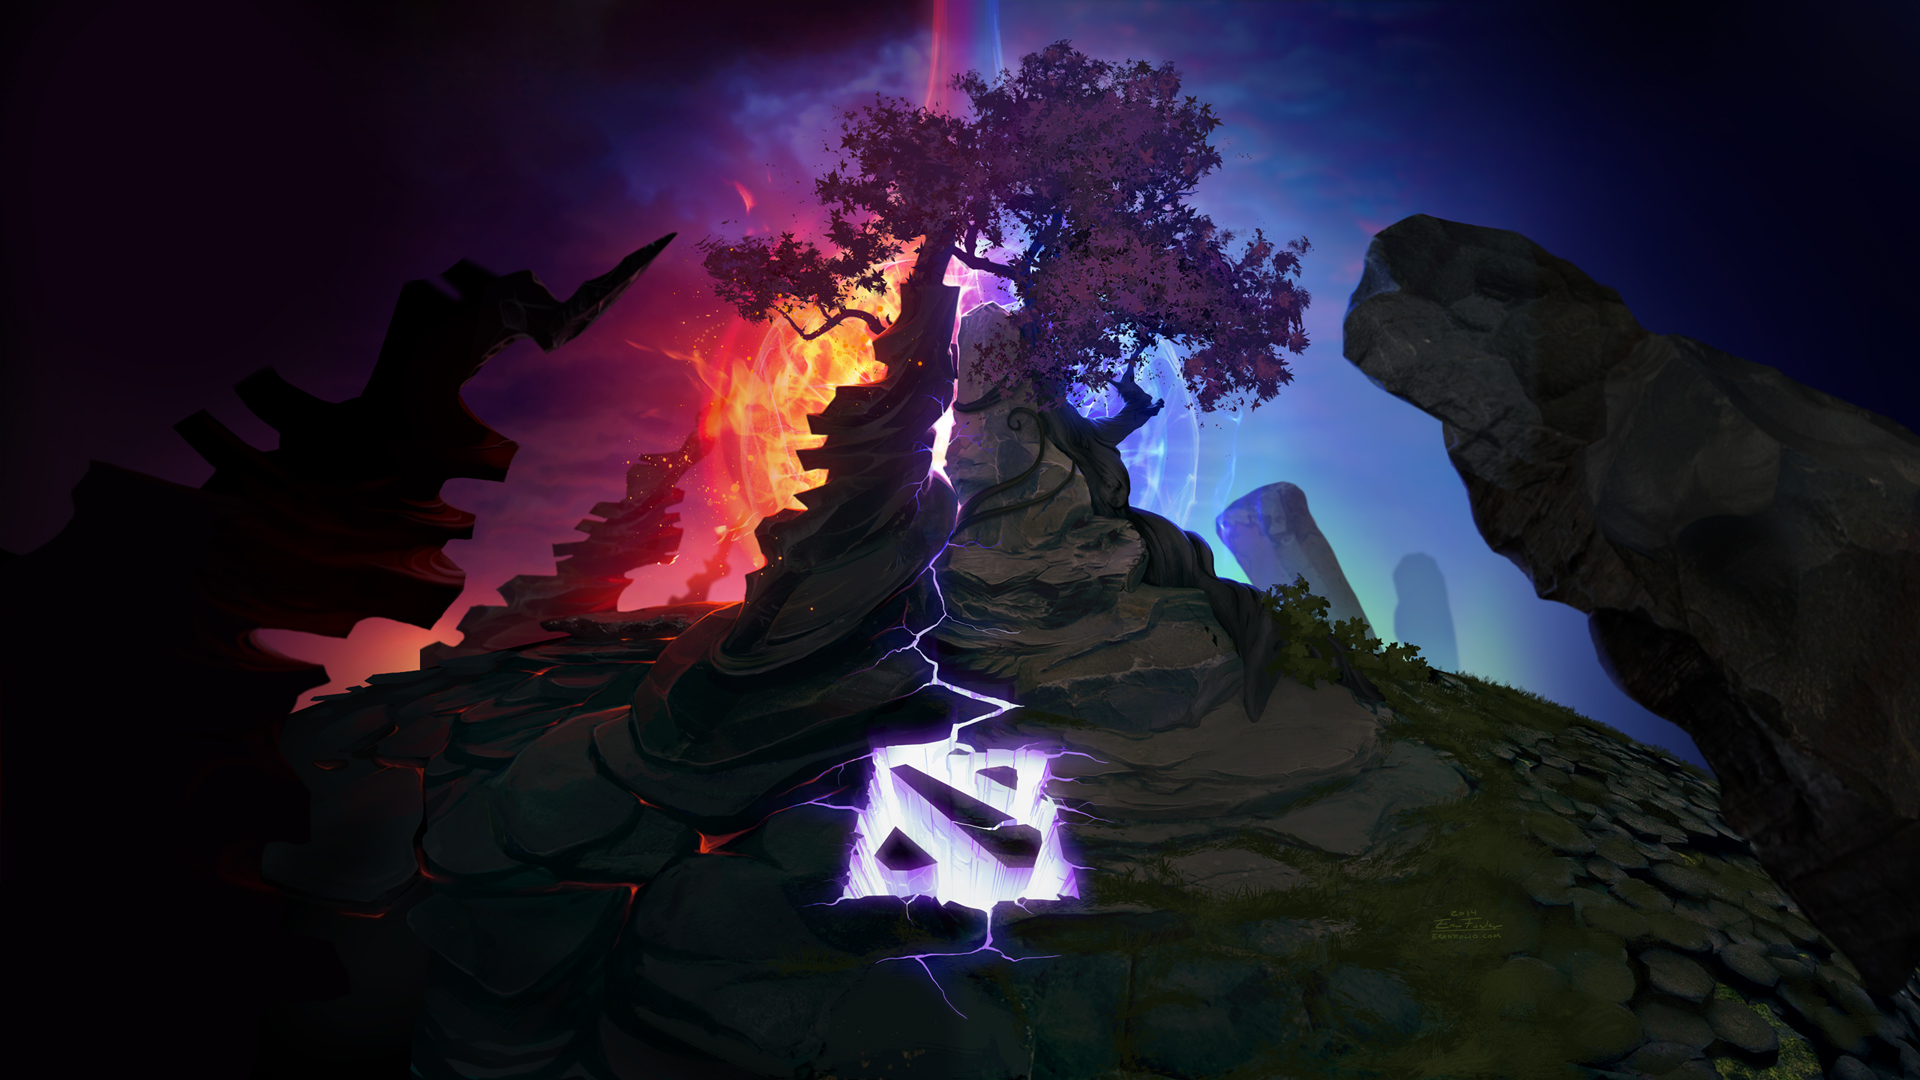 dota 2 hd wallpaper 1920x1080 wallpapersafari